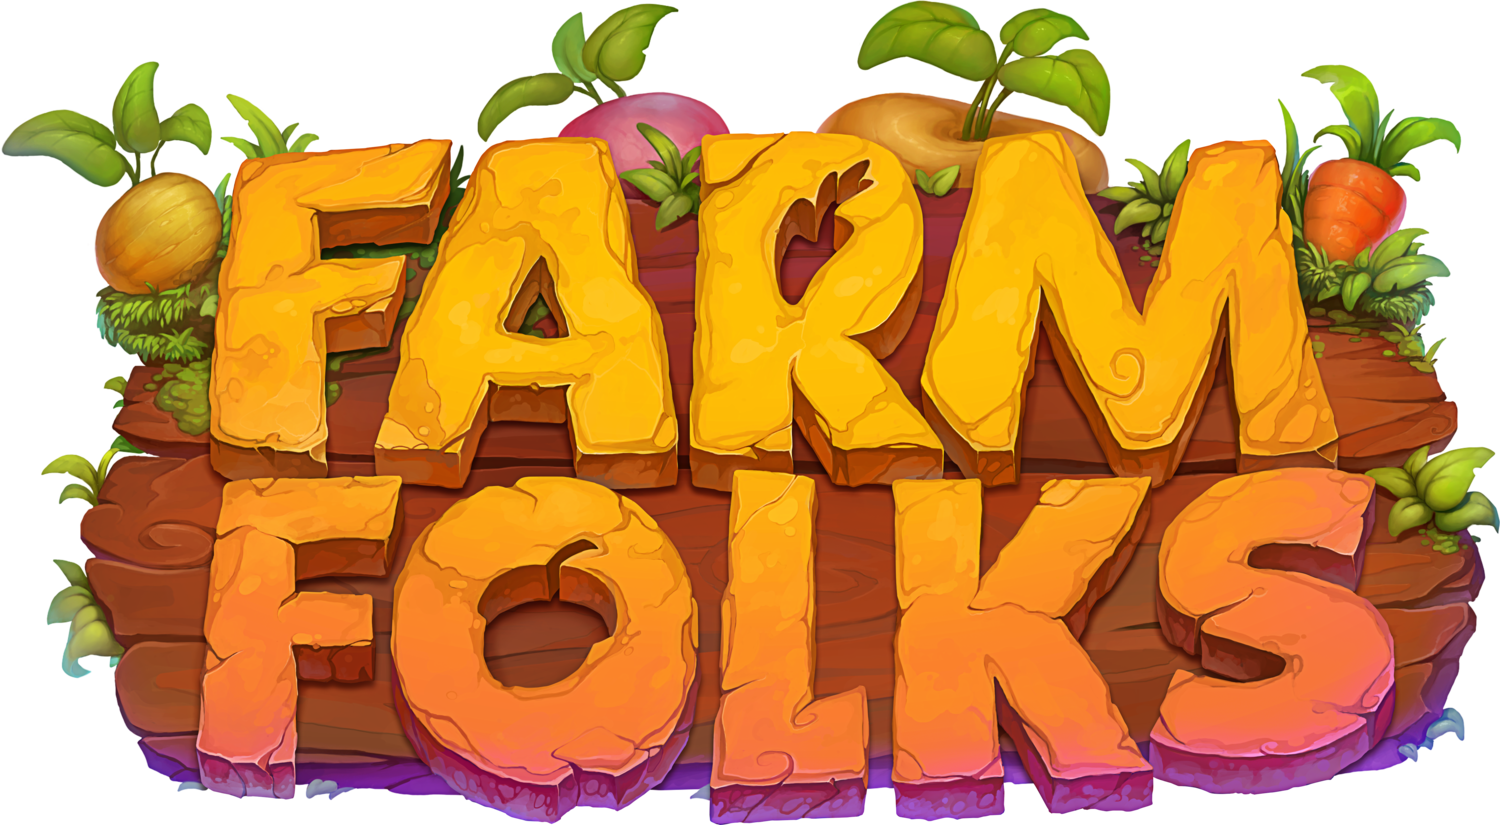 Farm Folks